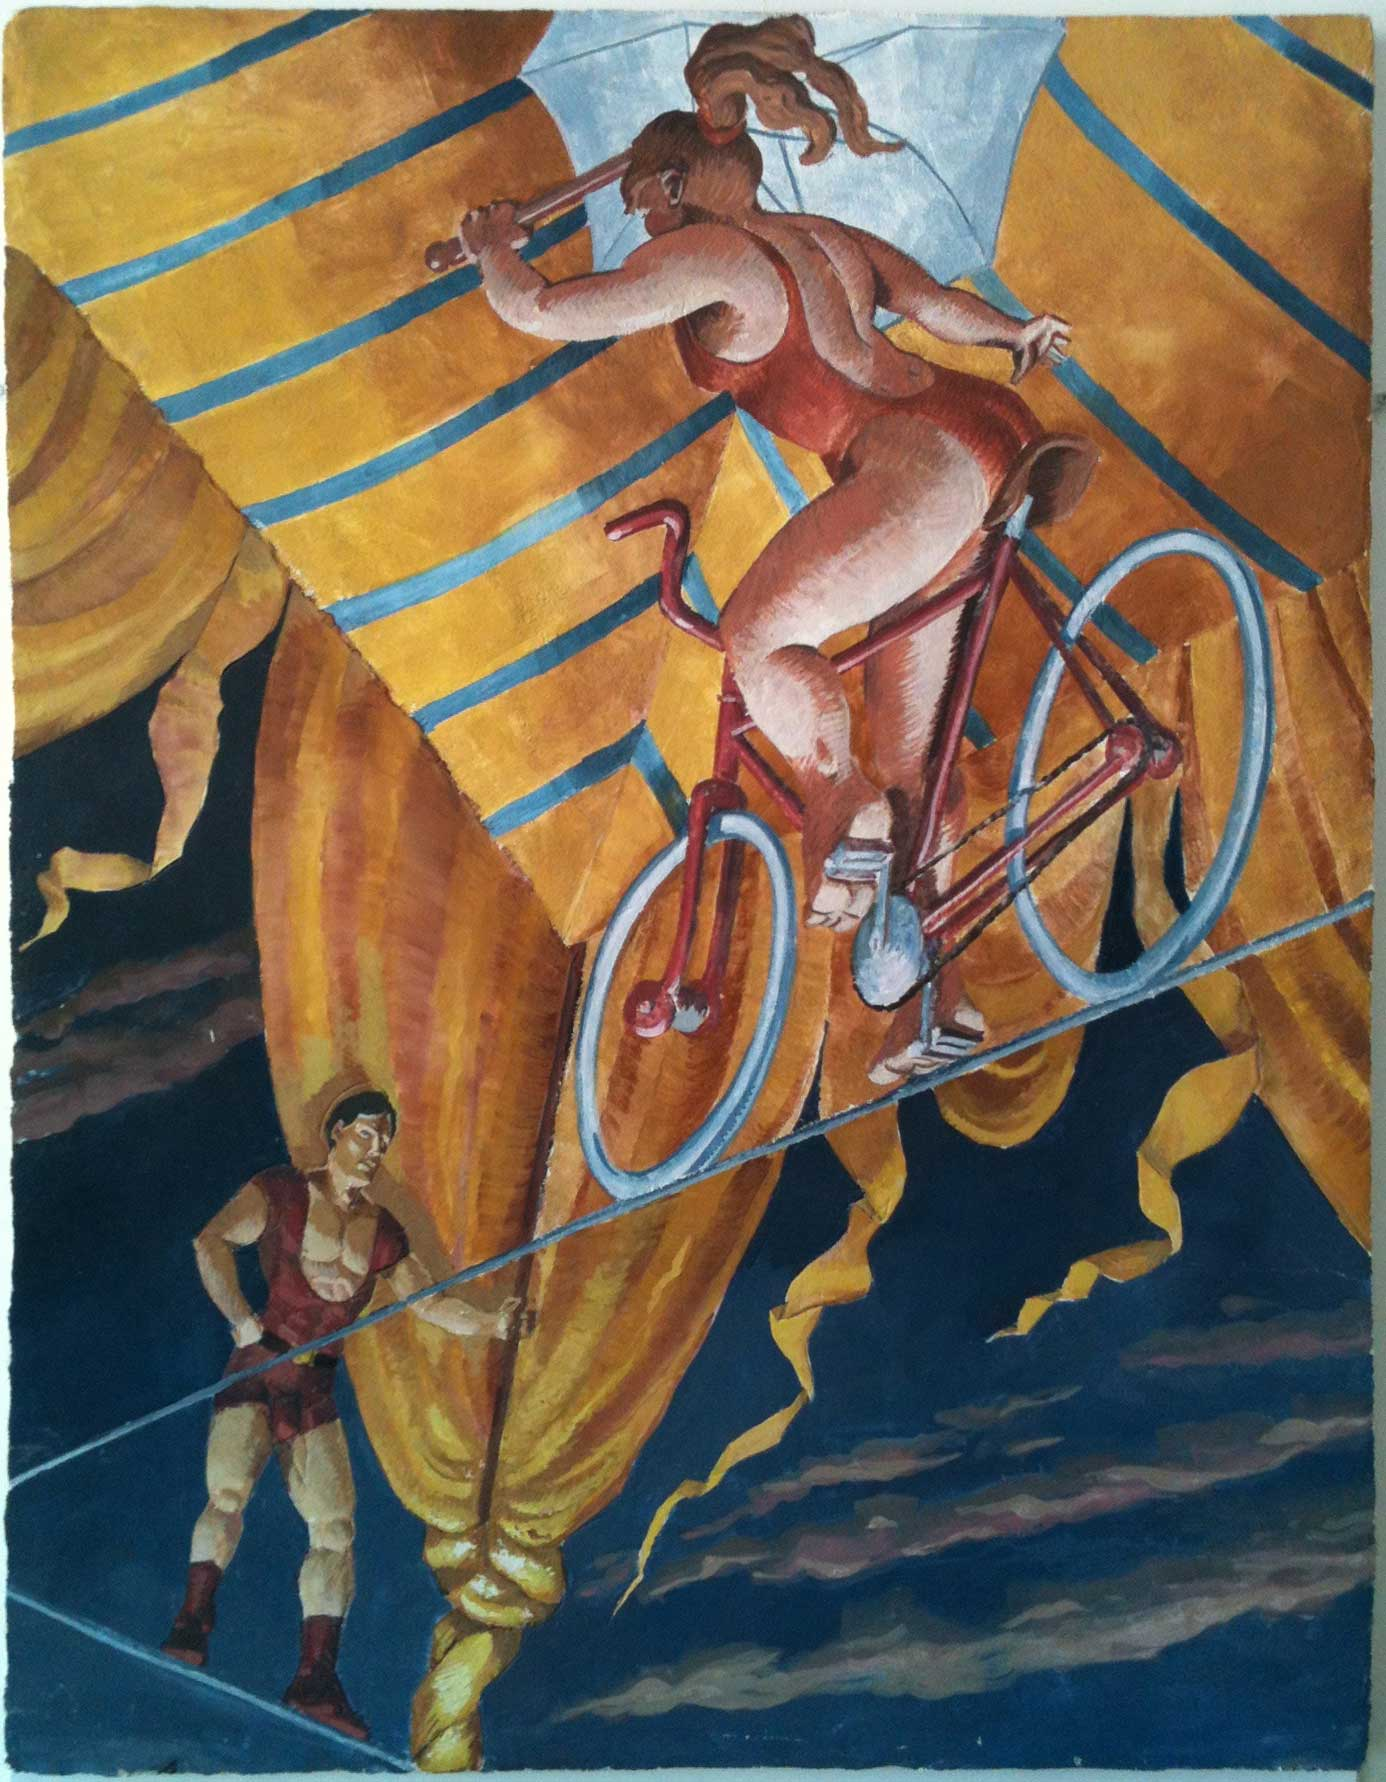 Fresco by Frédéric Lère, 1998